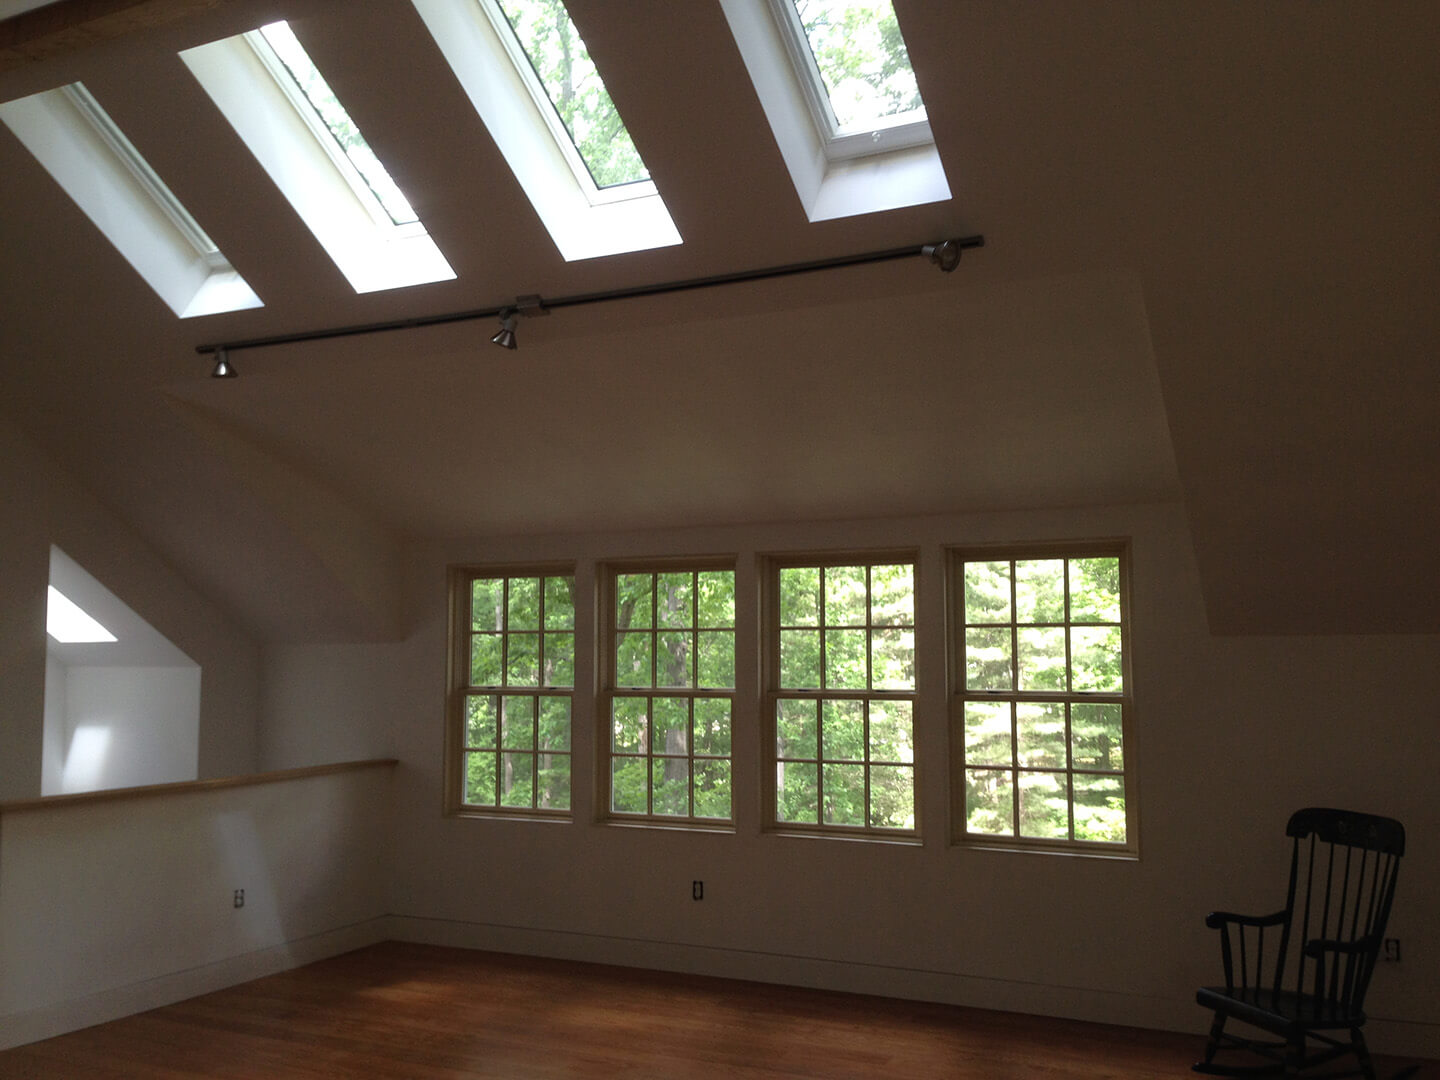 interior view of second floor of custom garage with skylights and hardwood floors